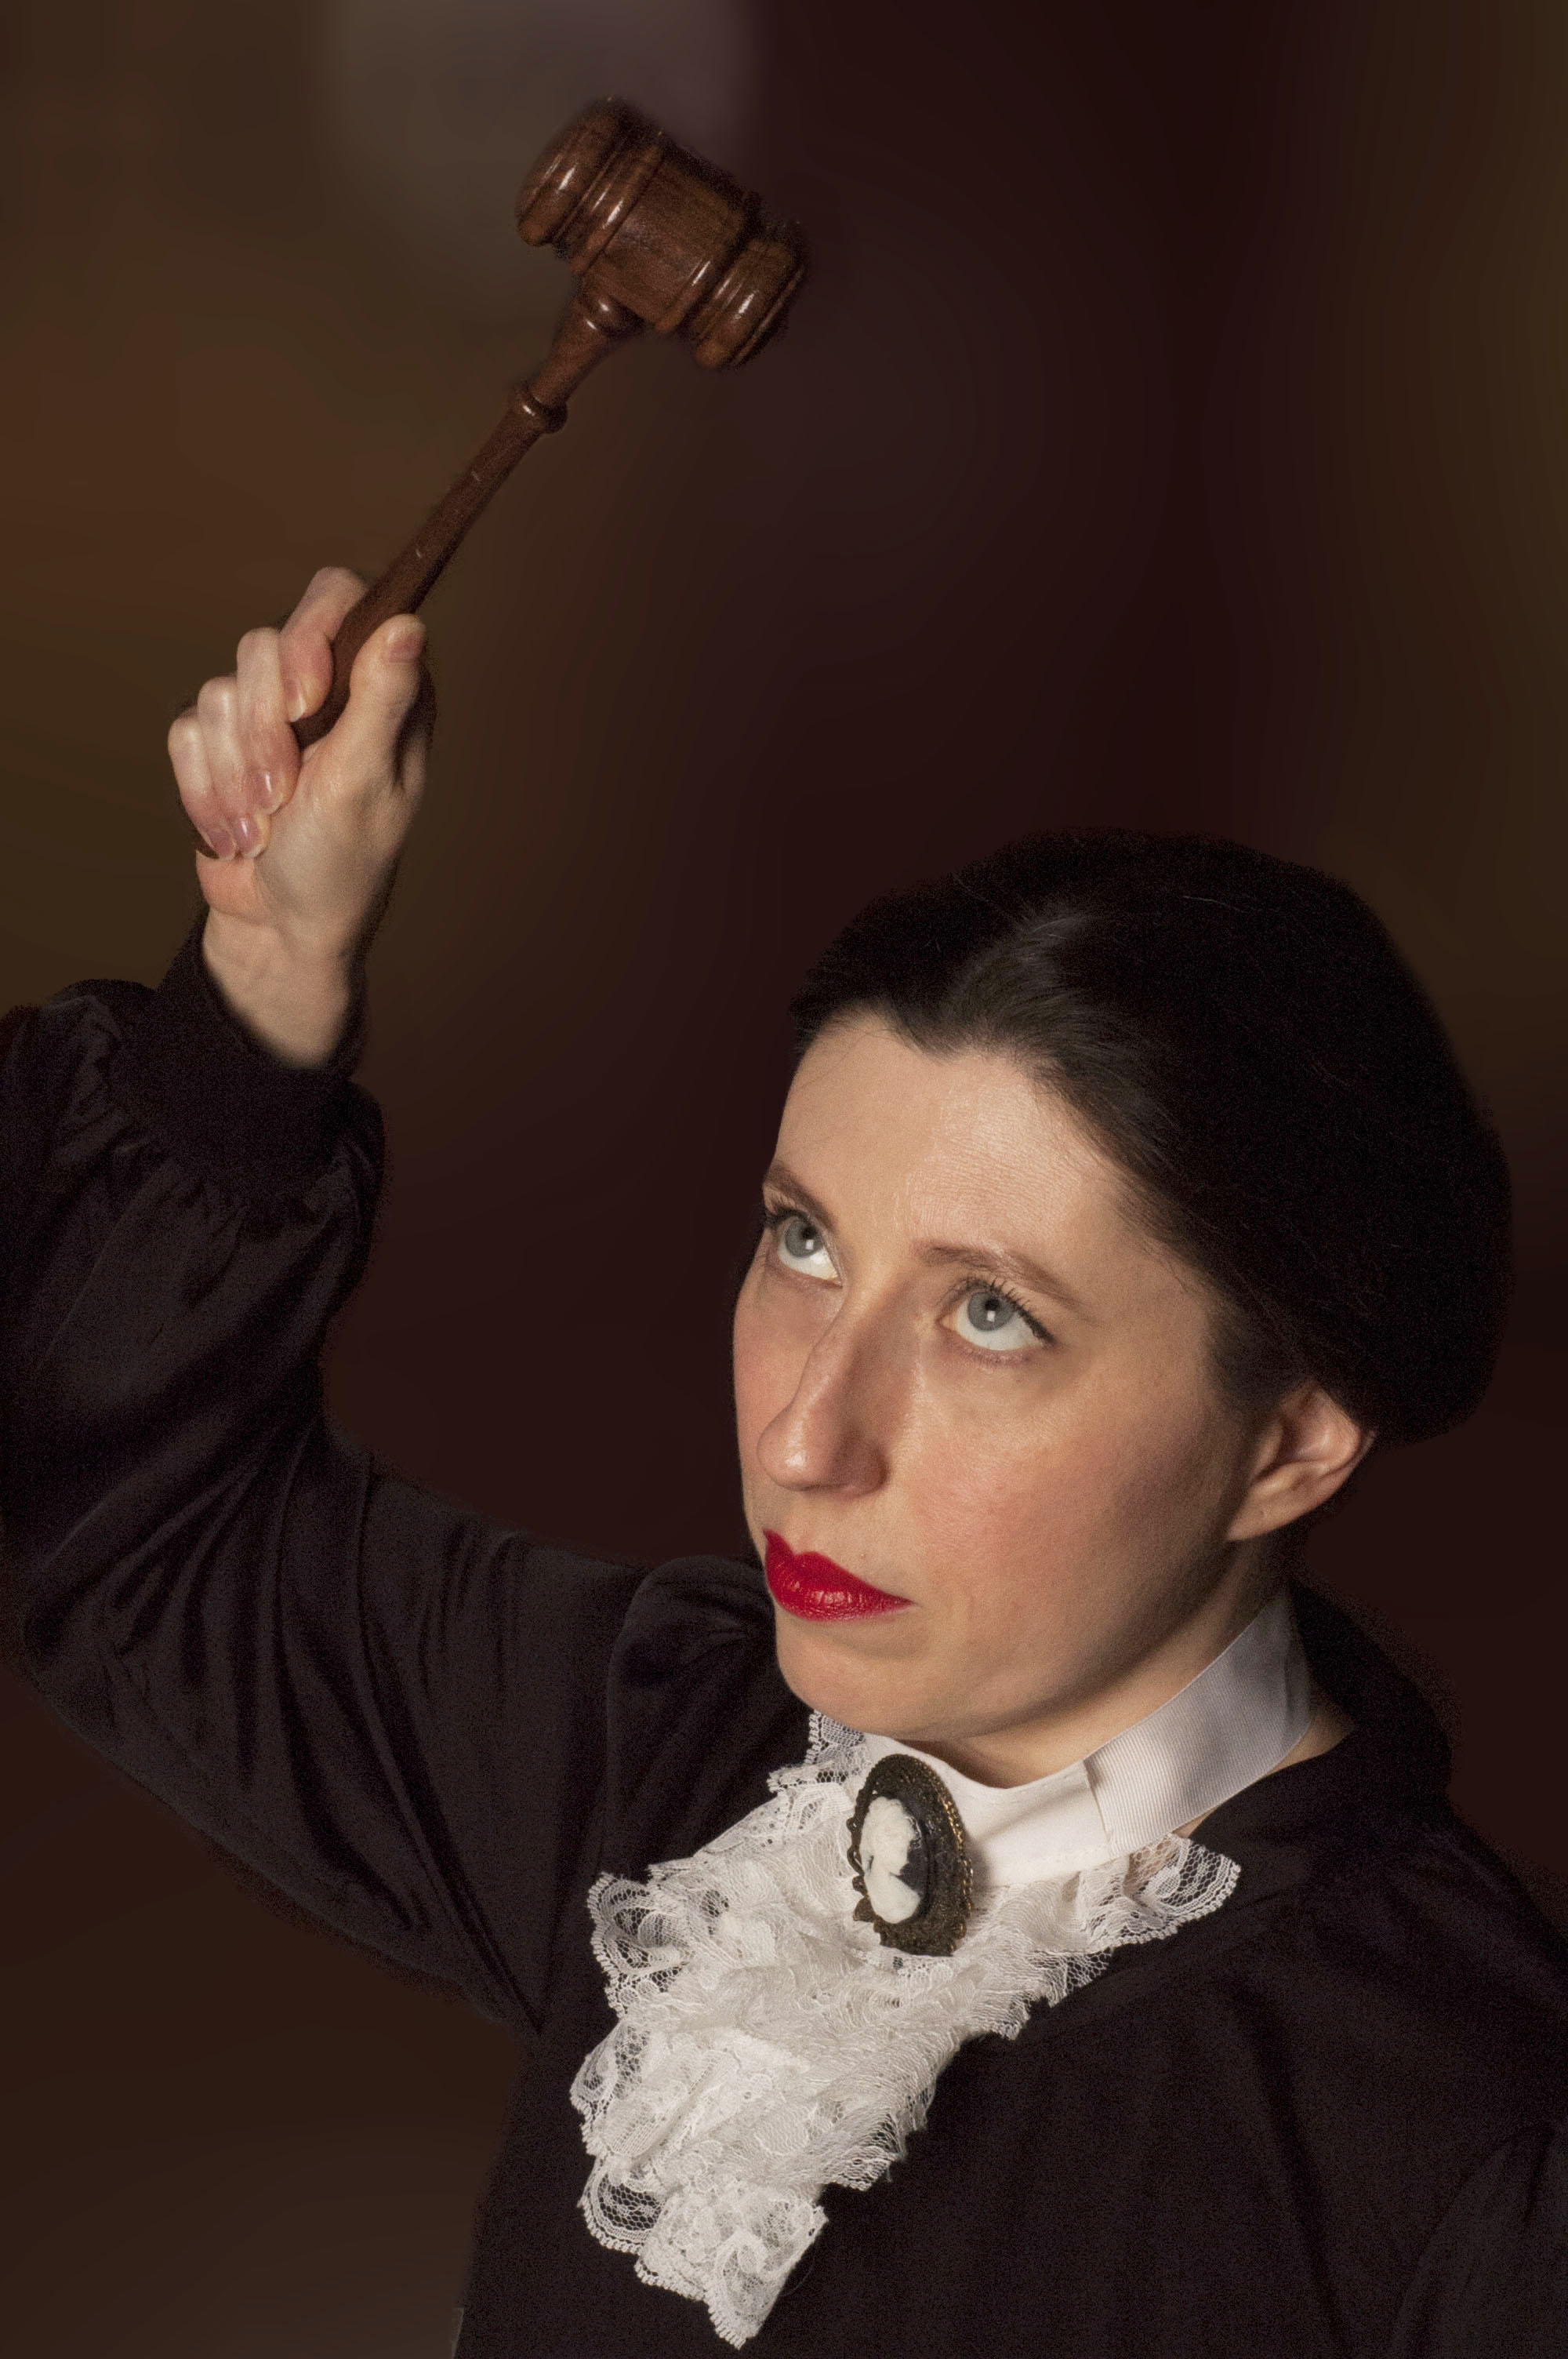 Woman with a Gavel 2.jpg